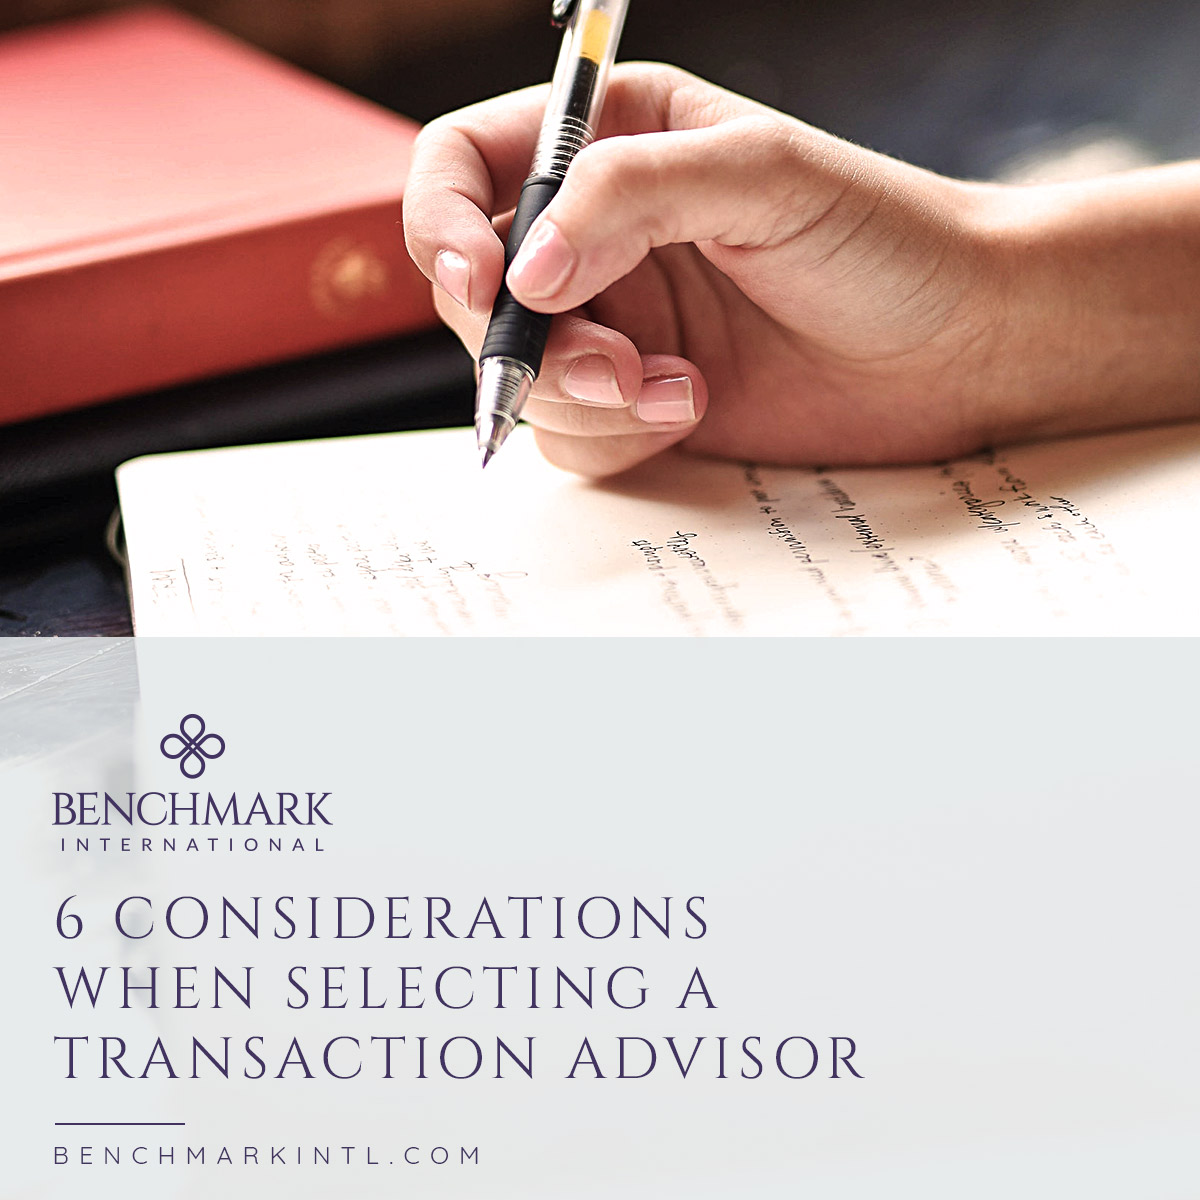 6_Considerations_When_Selecting_A_Transaction_Advisor_Social